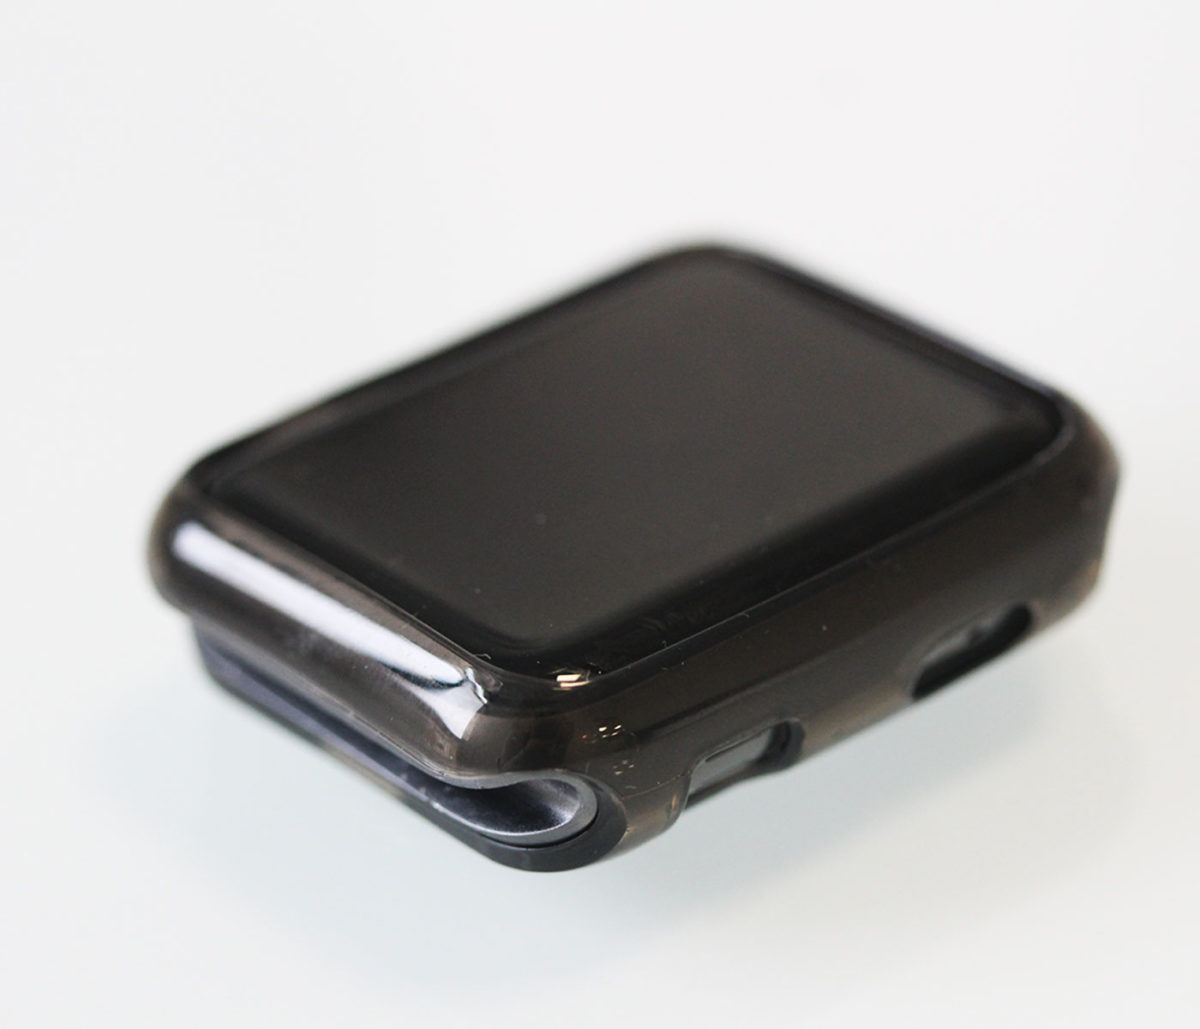 Apple watch protective case angular